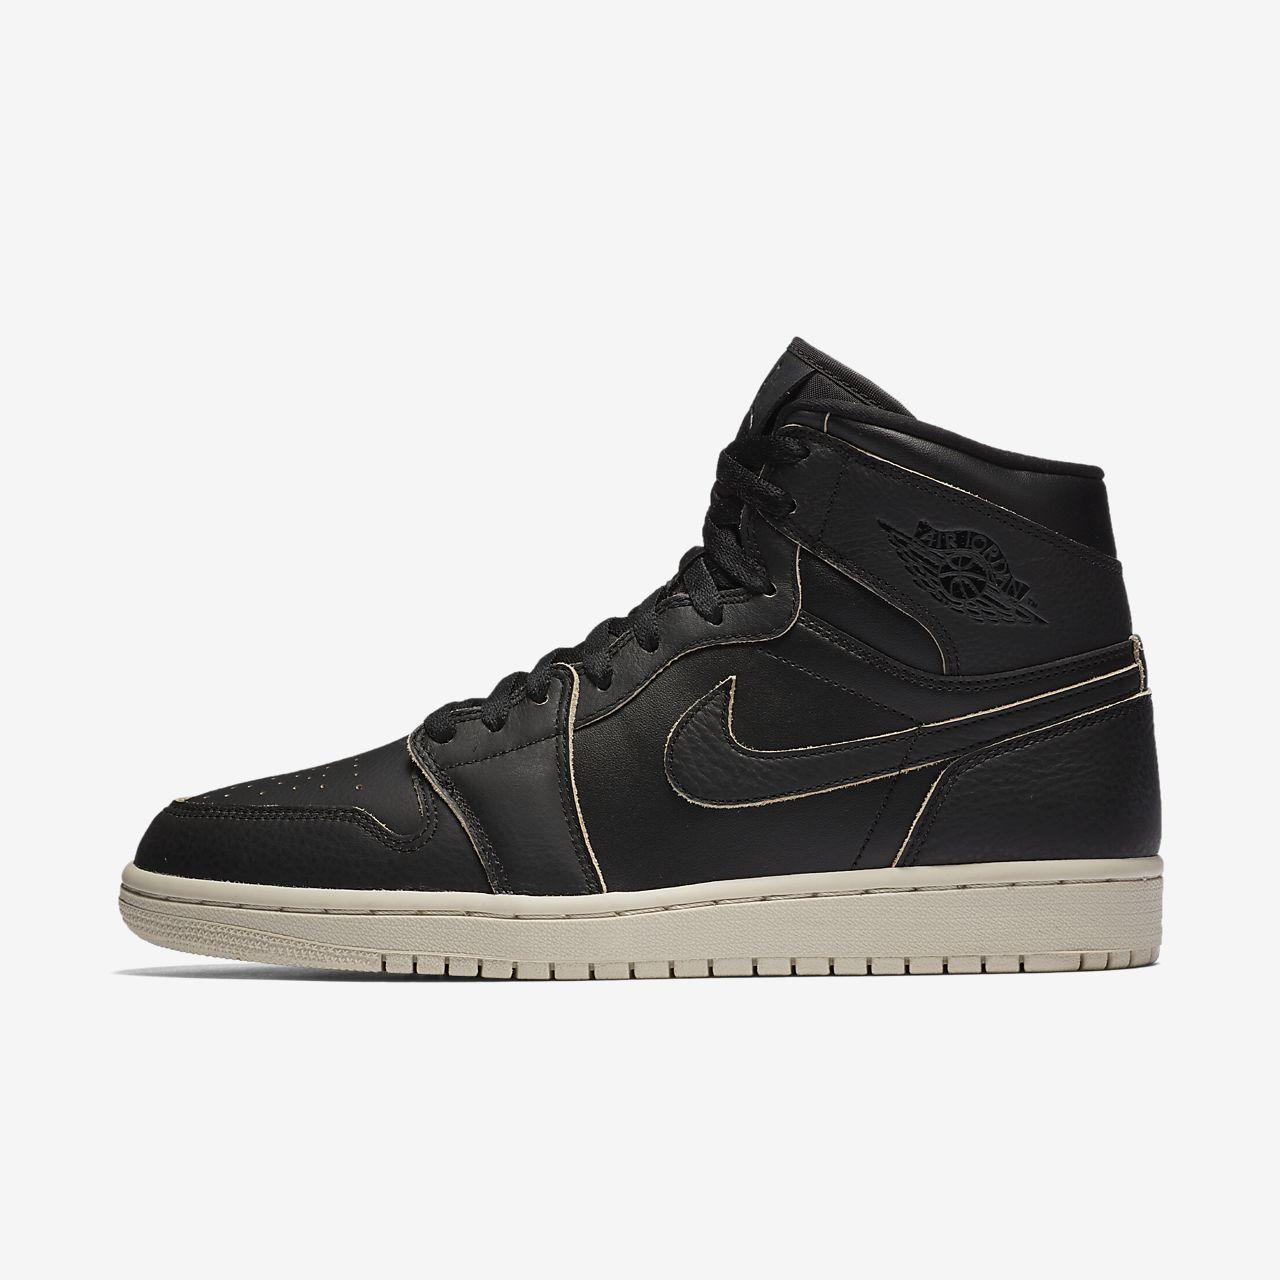 nike air jordan 1 retro high premium nz